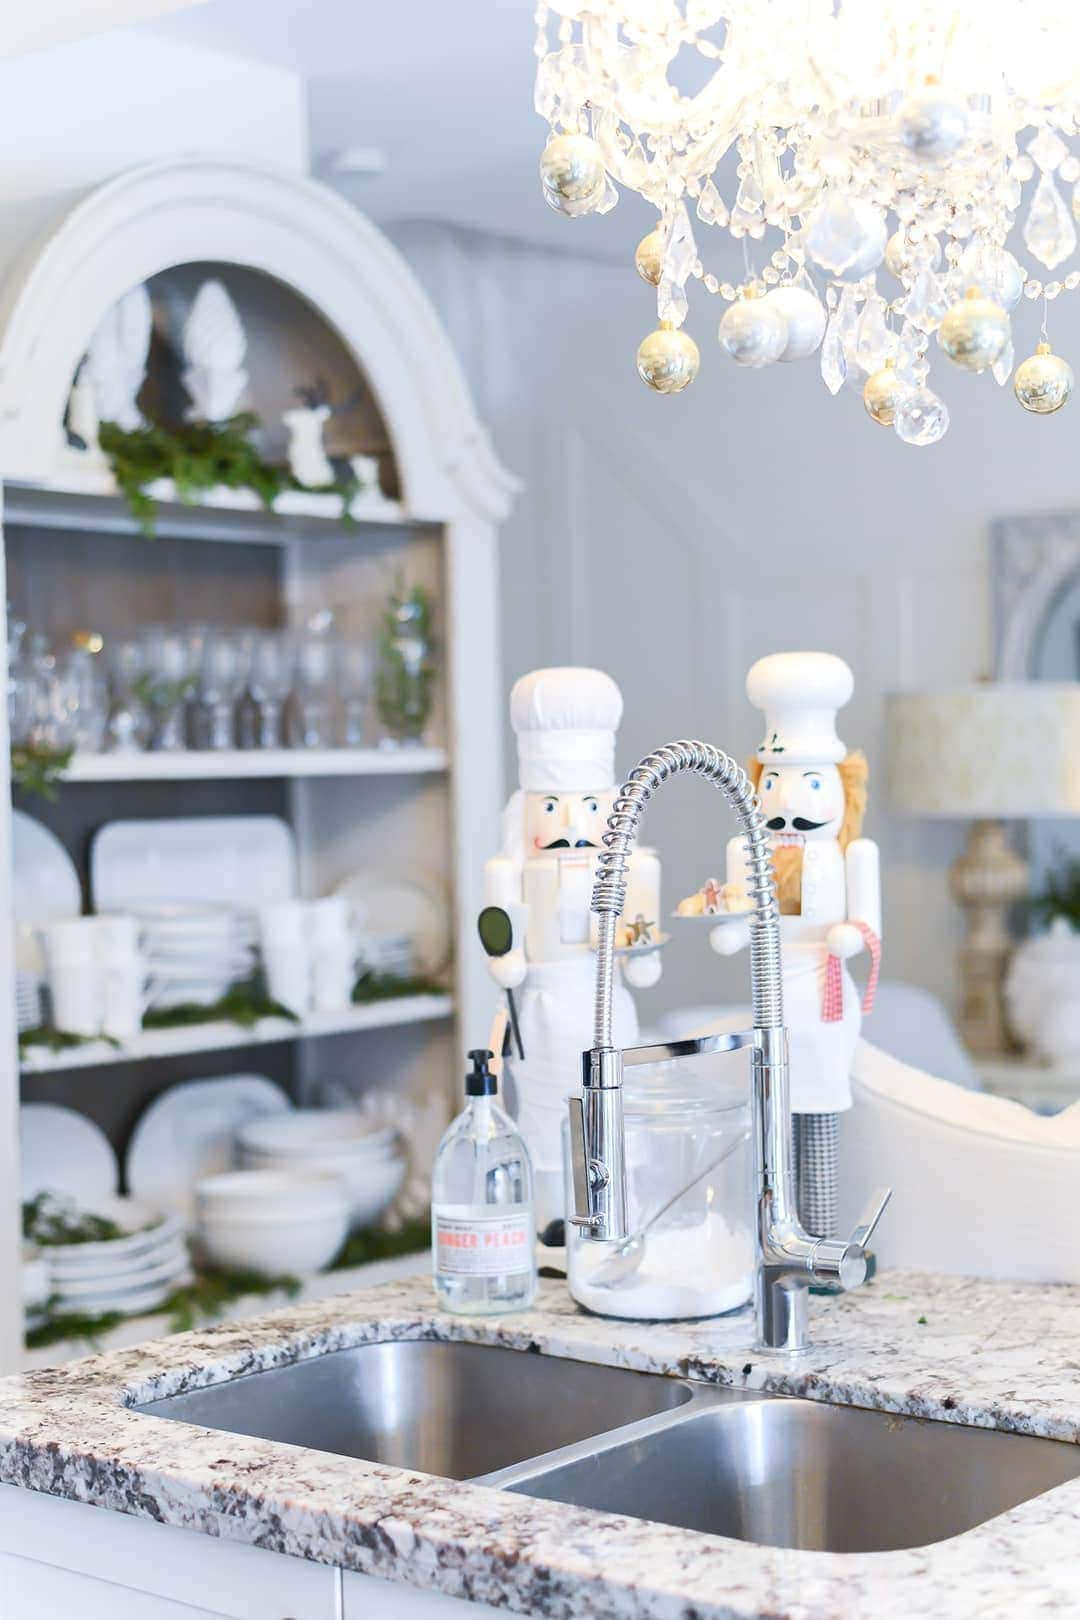 2 white Nutcrackers adorned the counter top and sink area, with large cabinet and crystal glassware in the background.